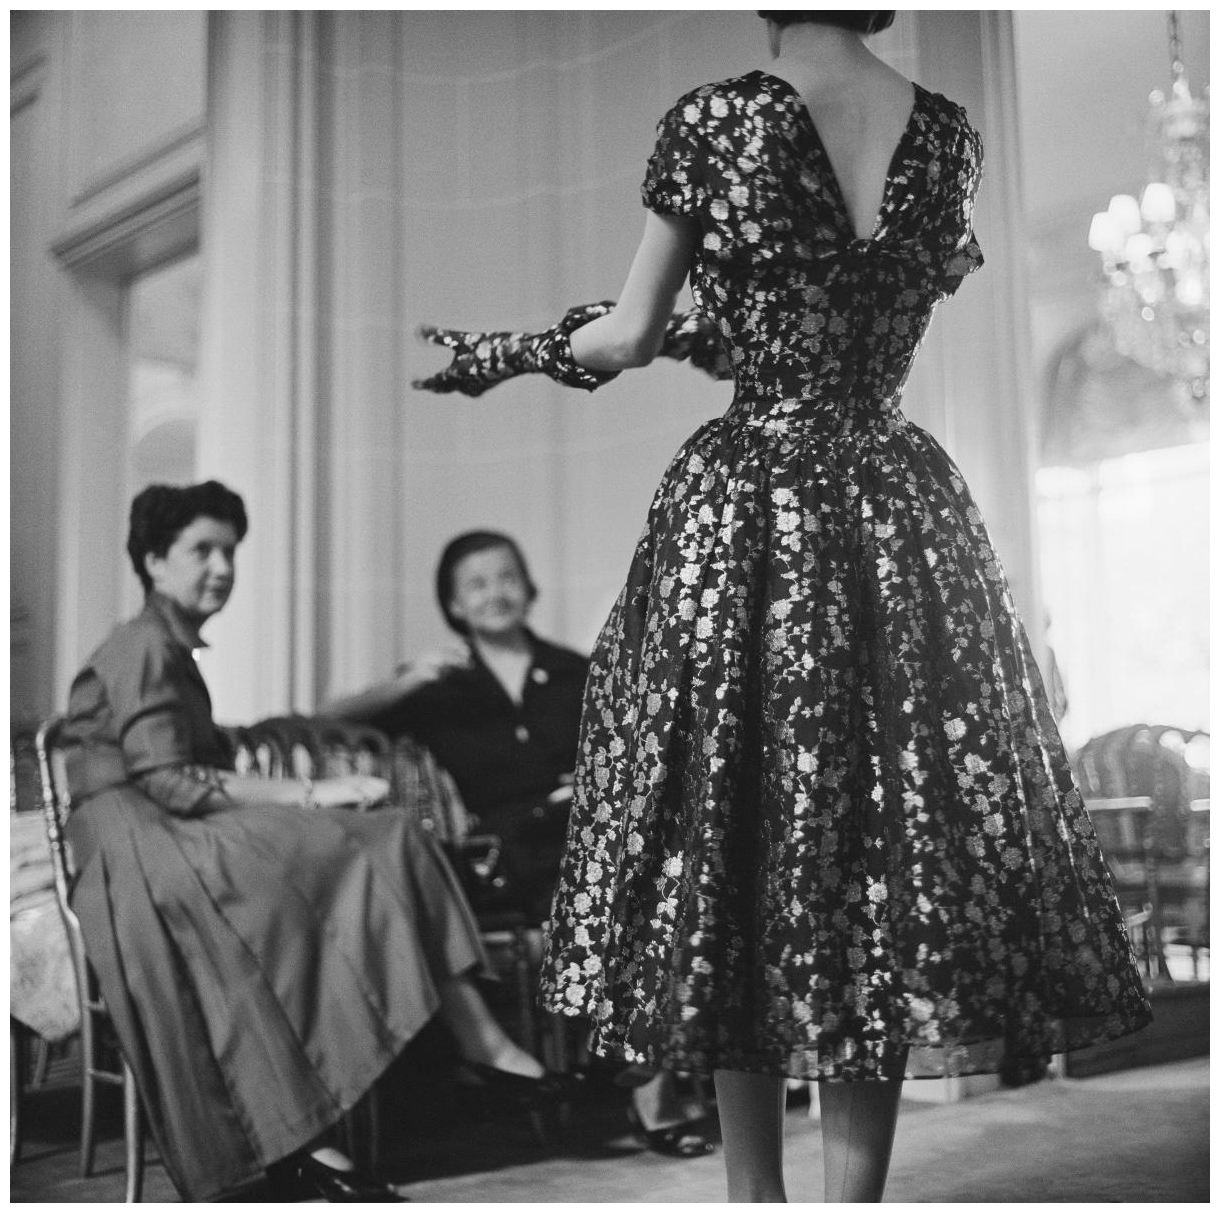 Mark Shaw - Haute Couture Fashion Photography Exhibition, Galrie MR14 - dior-glamour-autumn-winter-1953-haute-couture-collection-vivante-line-photo-mark-shaw - vintage fashion